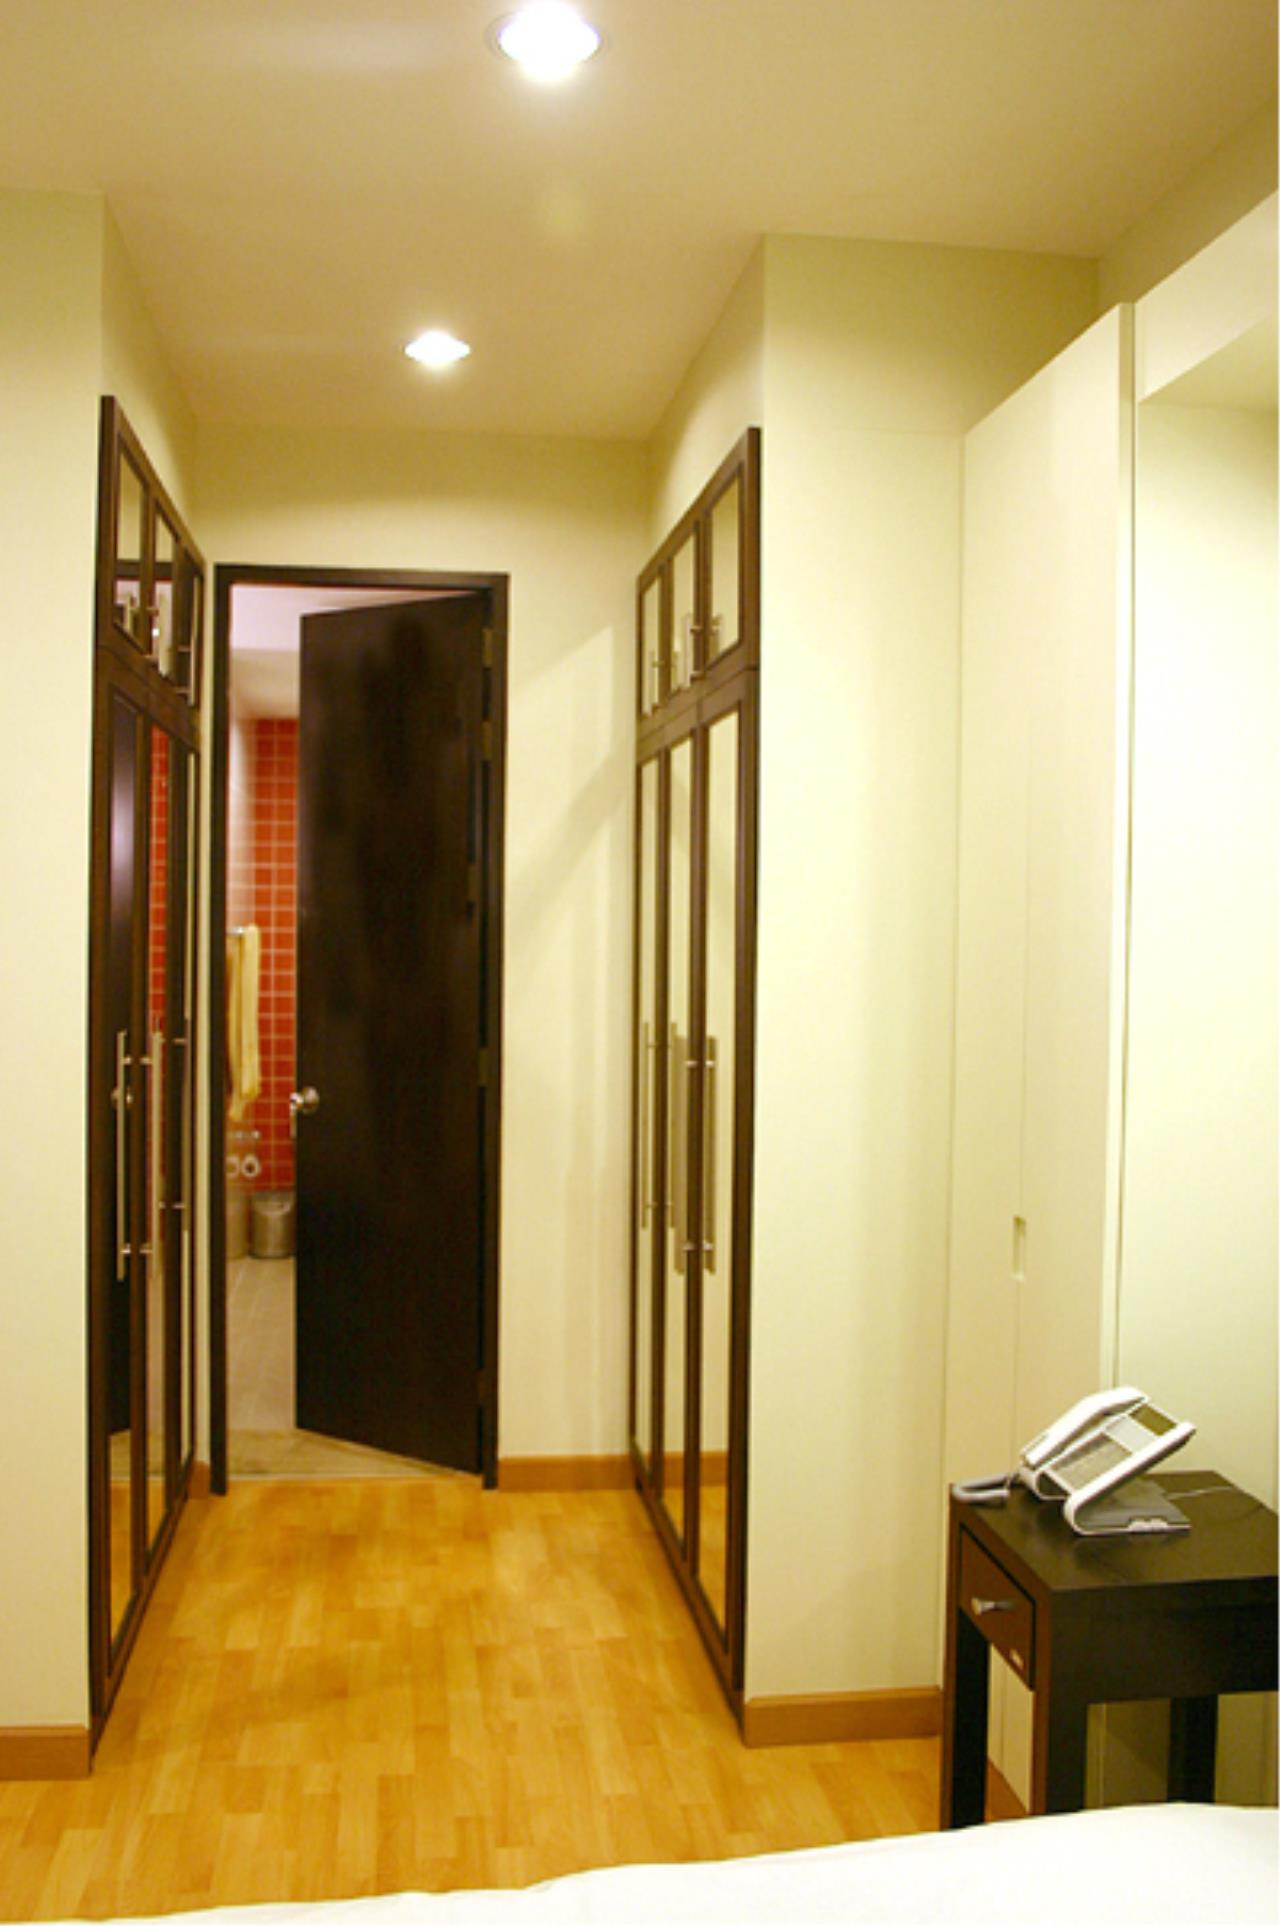 RE/MAX All Star Realty Agency's Citismart Condo SK18 for Rent, 2 bedrooms on high floor. 9